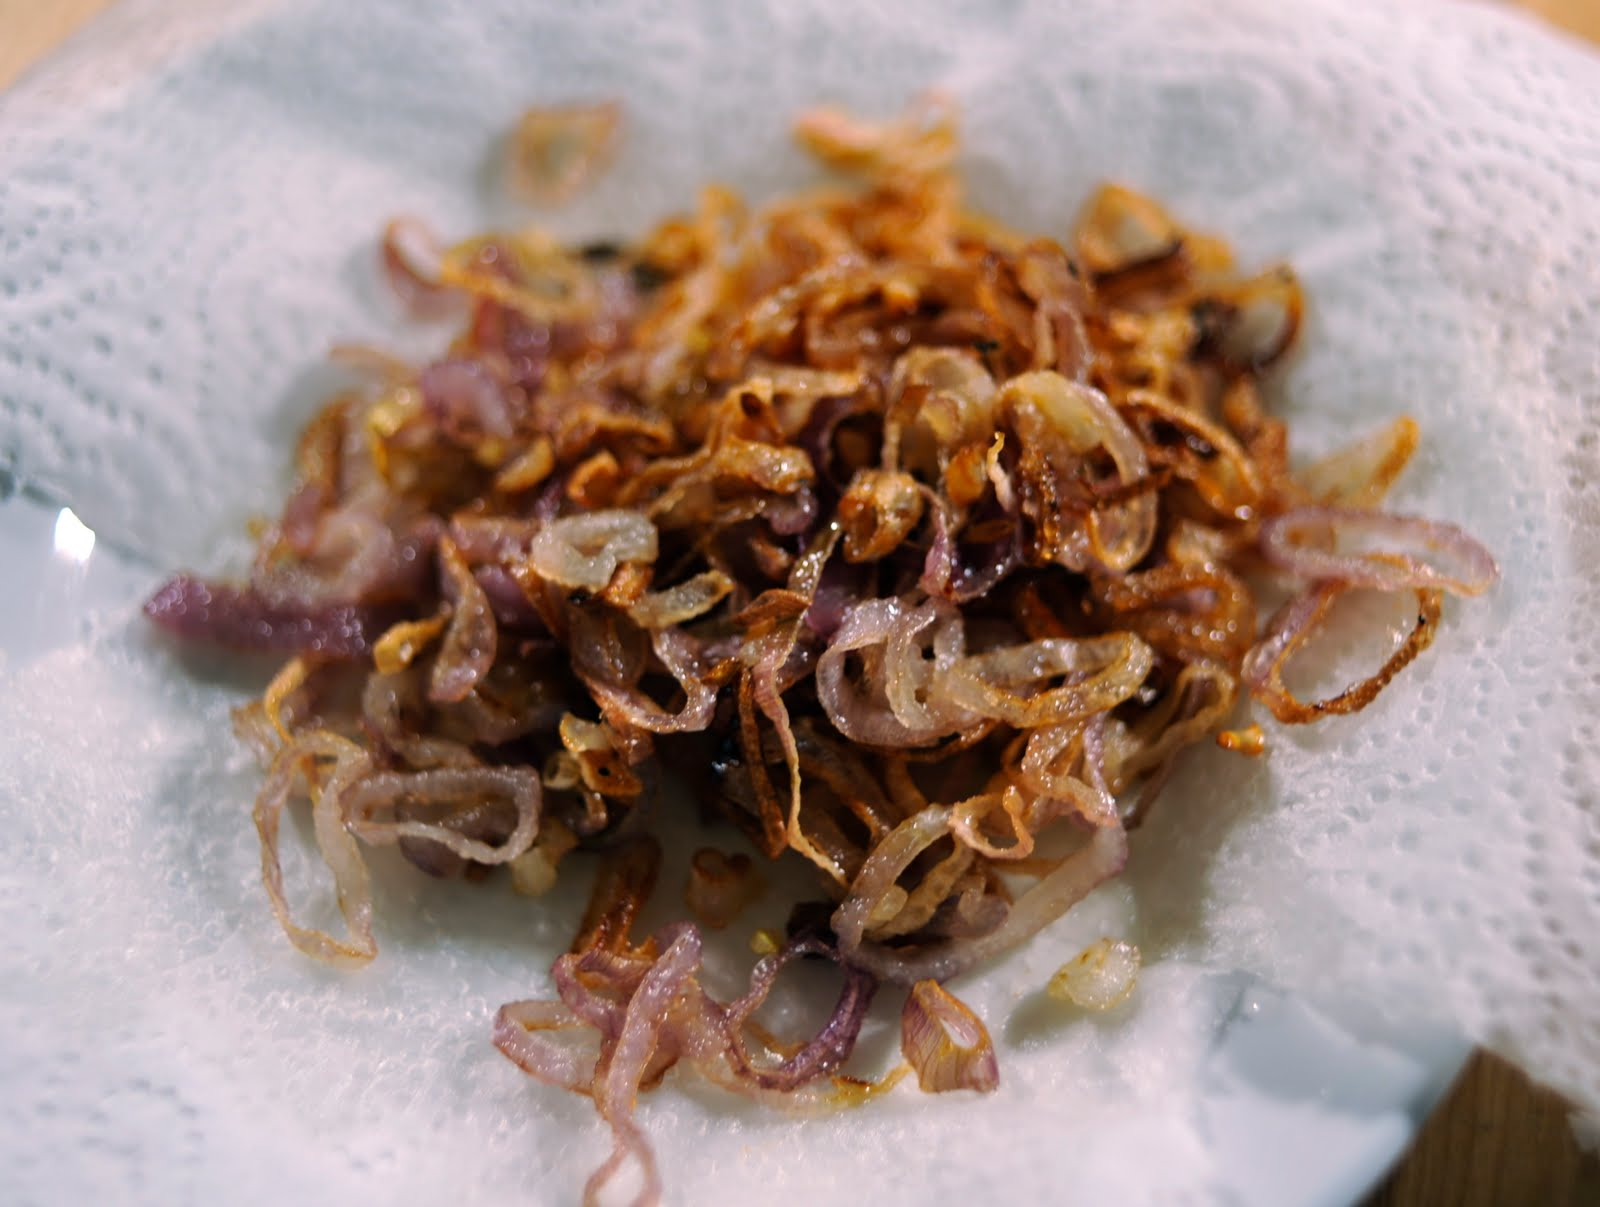 You start by deep-frying 3-4 large sliced shallots in one cup of ...